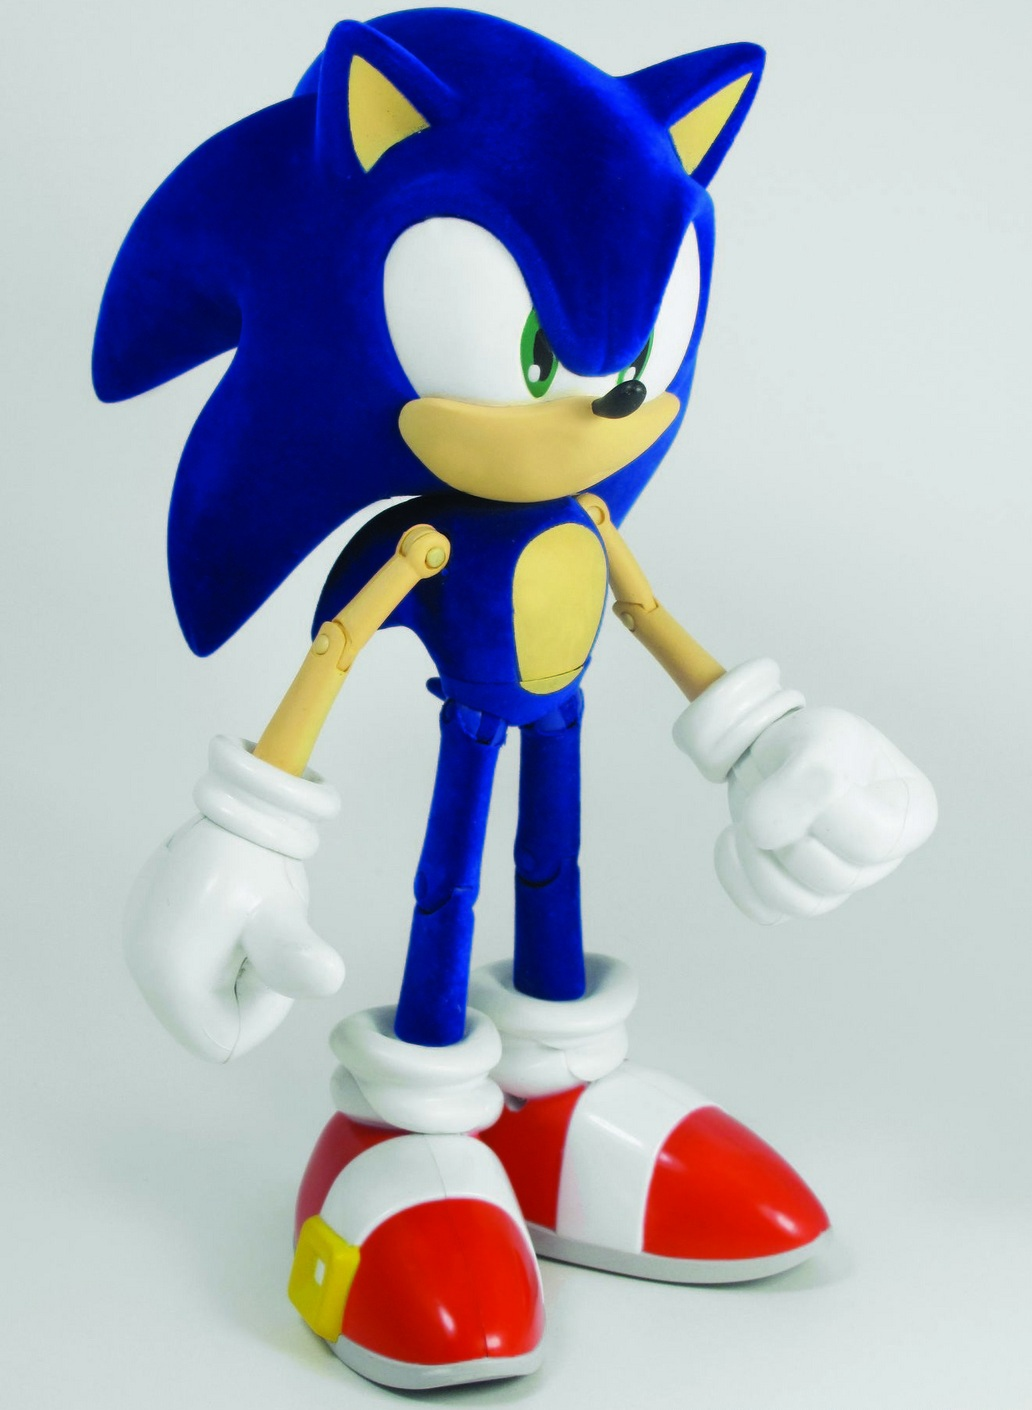 SDCC 2011: A Fuzzy Sonic Figure You Can't Have... Or Can You? - Sonic ...: www.sonicretro.org/2011/07/sdcc-2011-a-fuzzy-sonic-figure-you-cant...